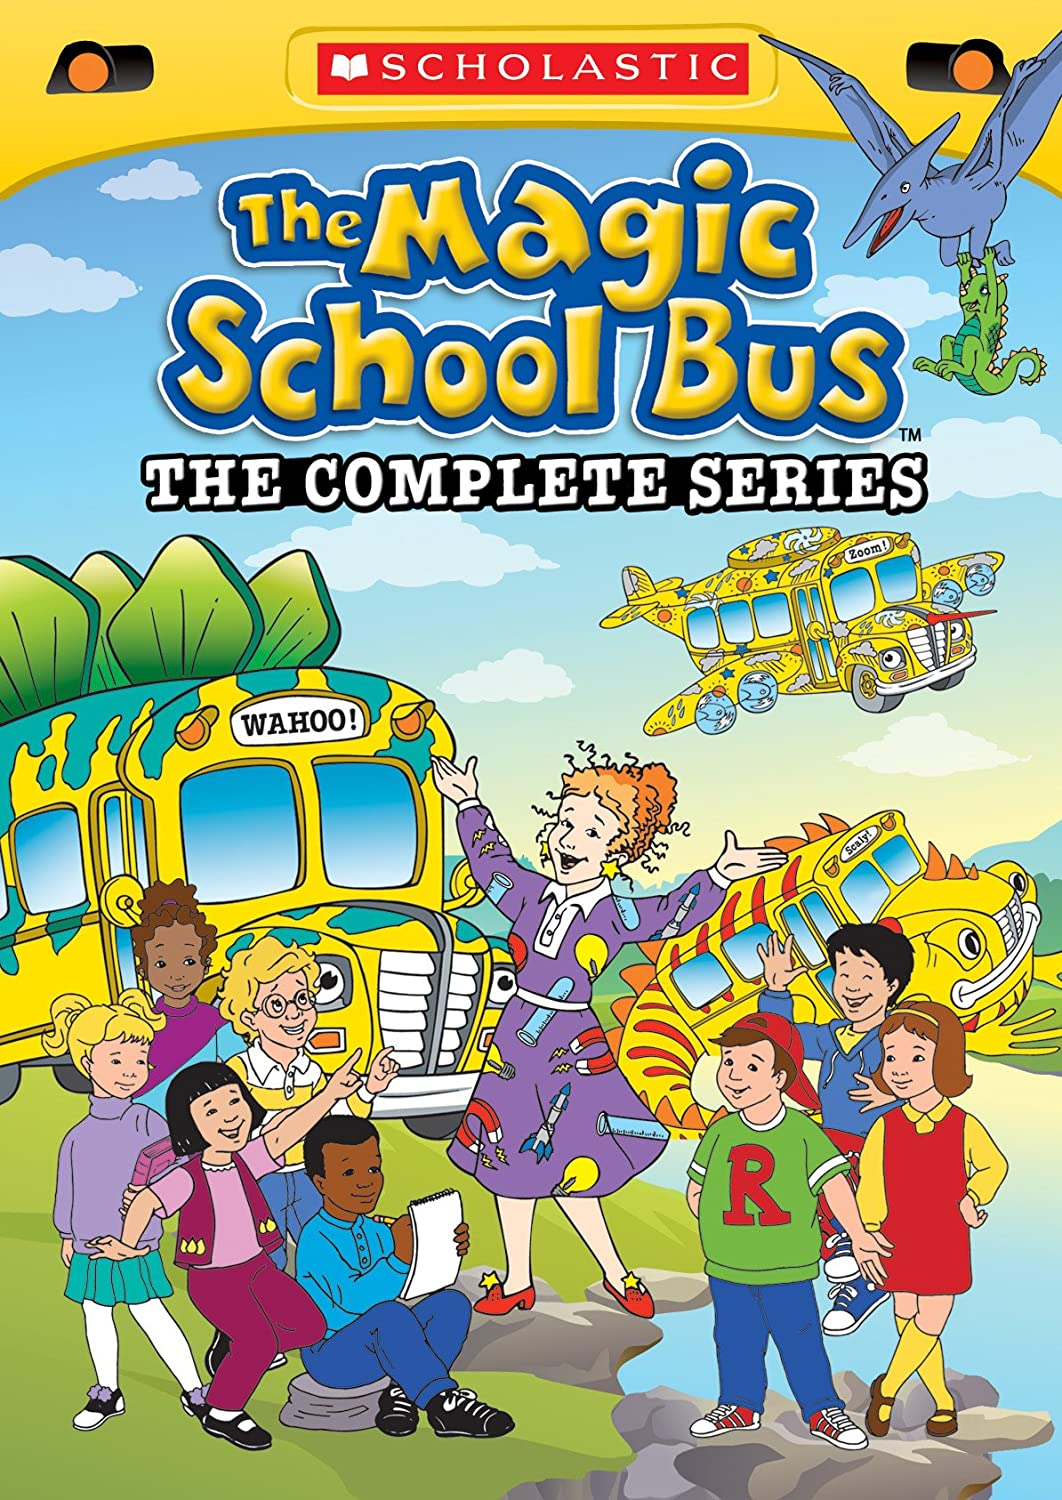 Amazon: The Magic Schoolbus Co...